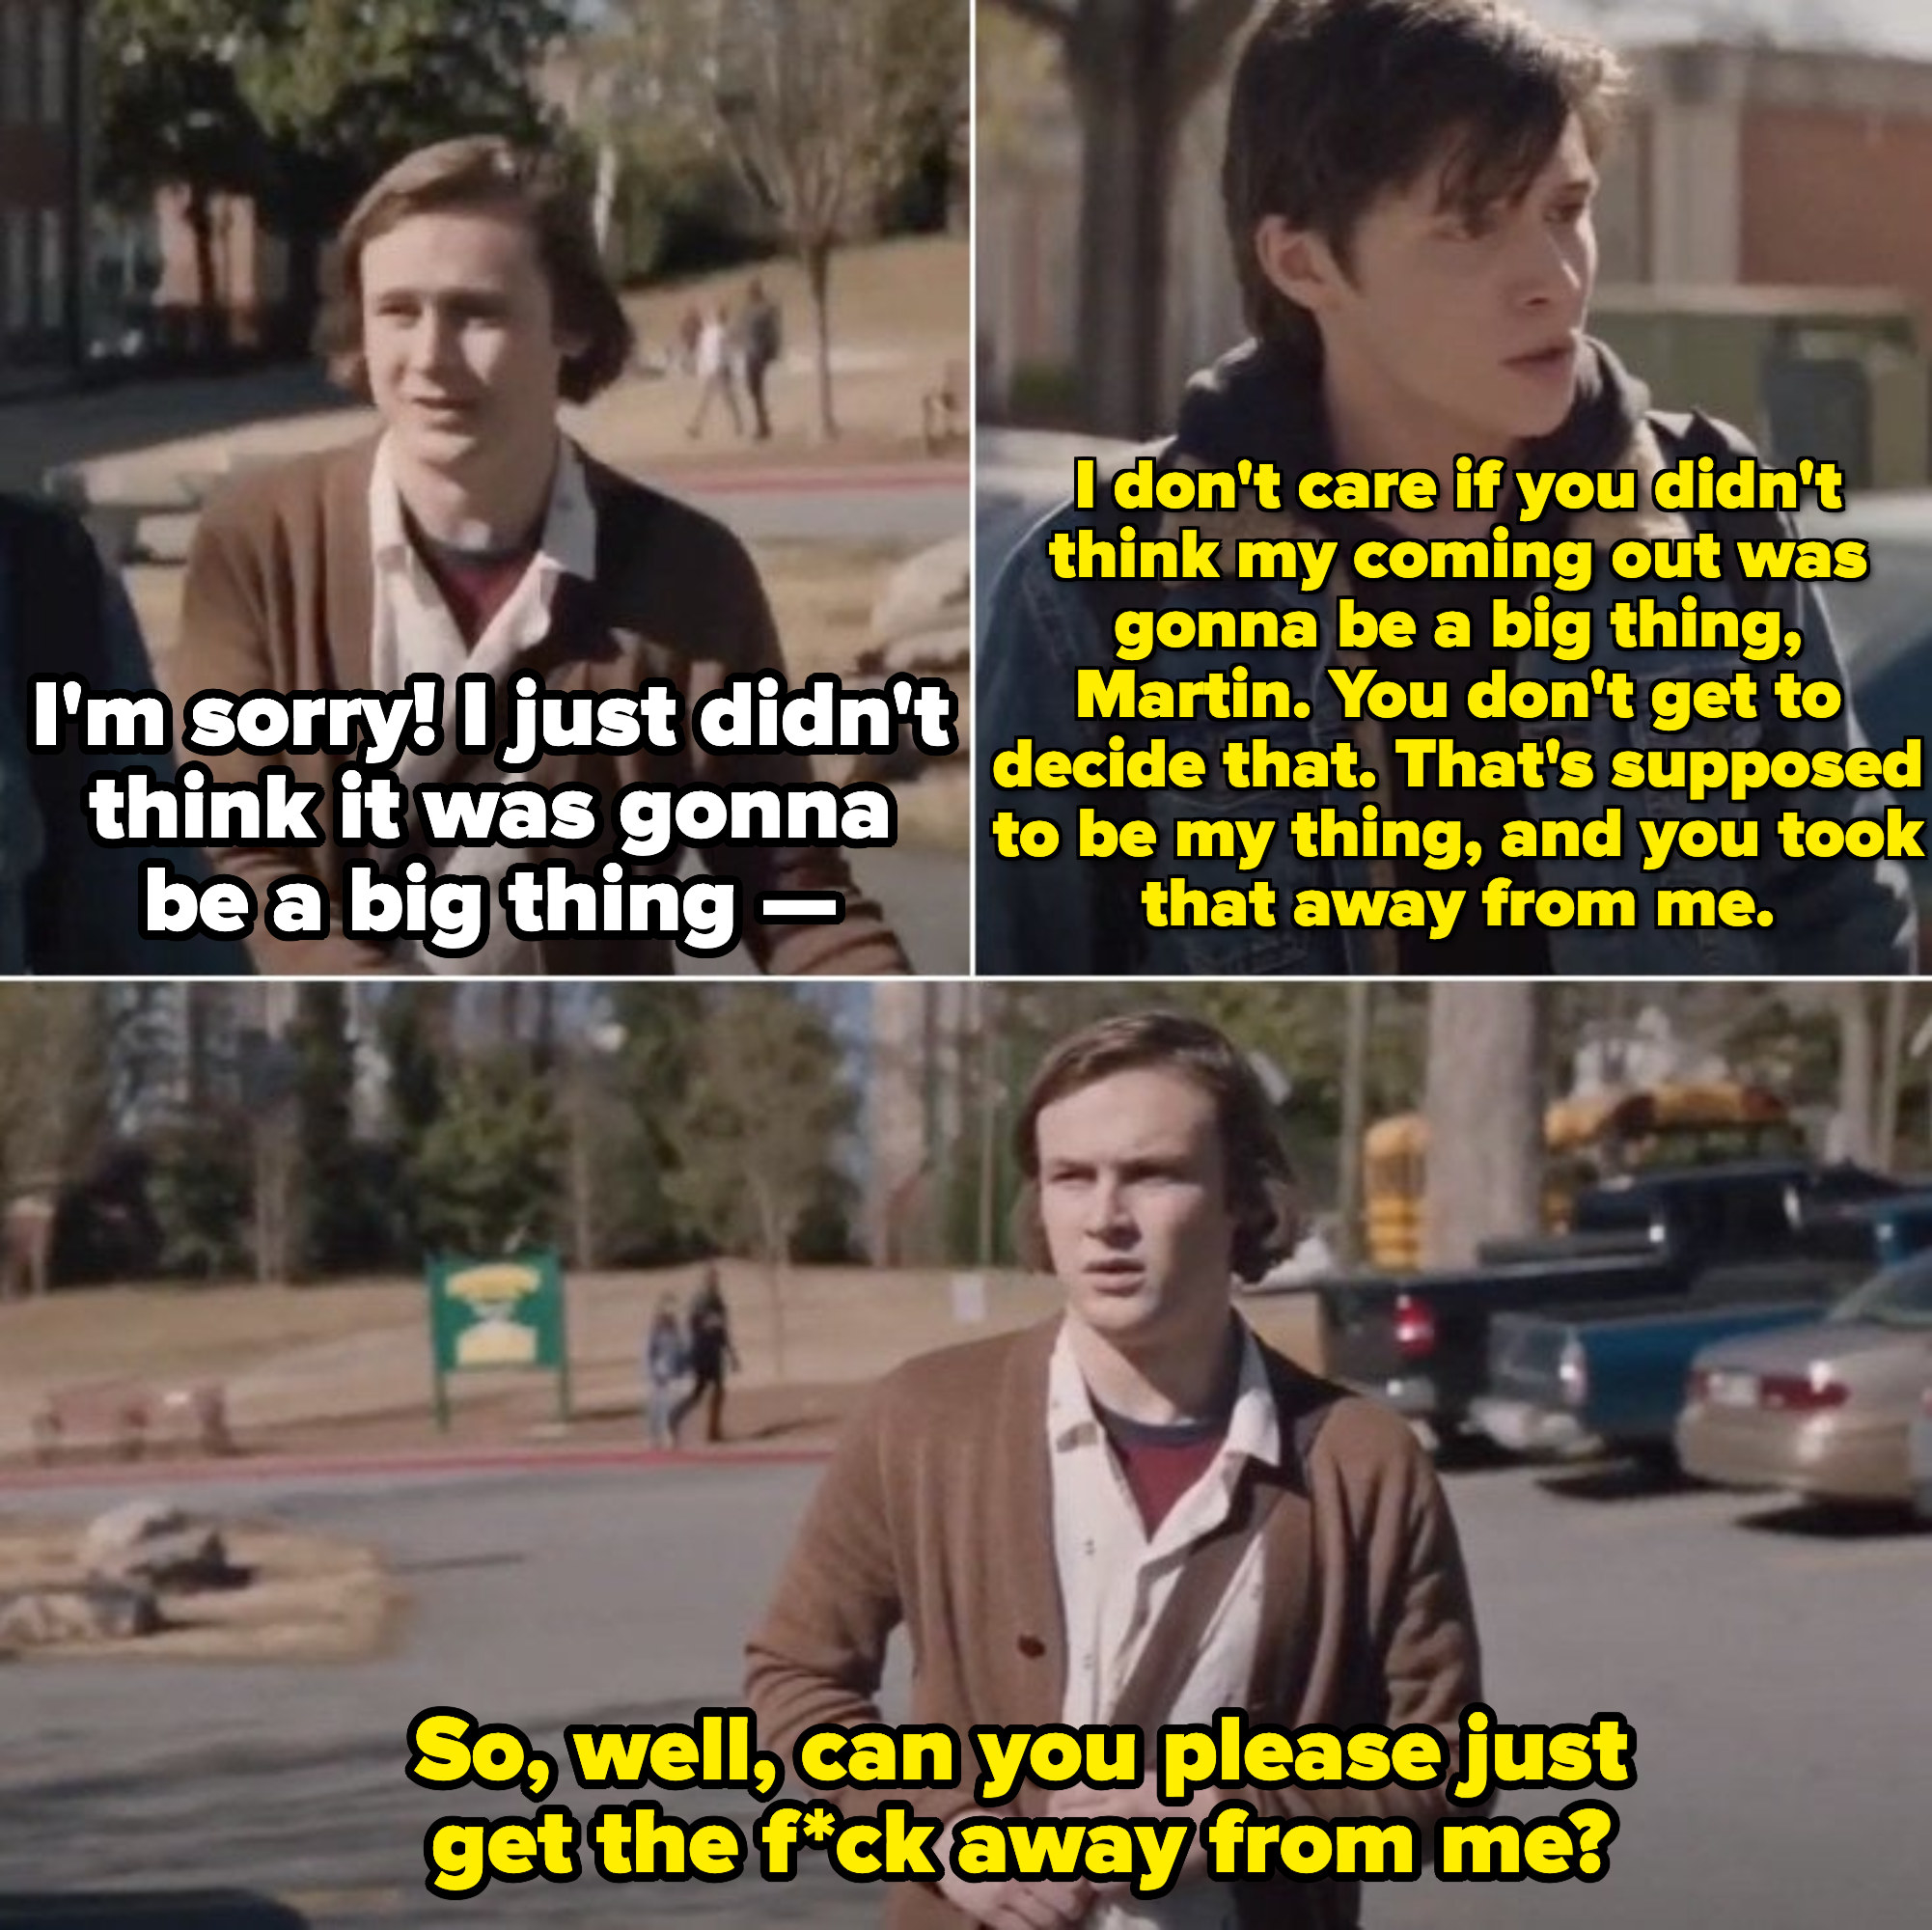 Martin trying to apologize to Simon outside of school in an intimidated way, but Simon isn't having any of it